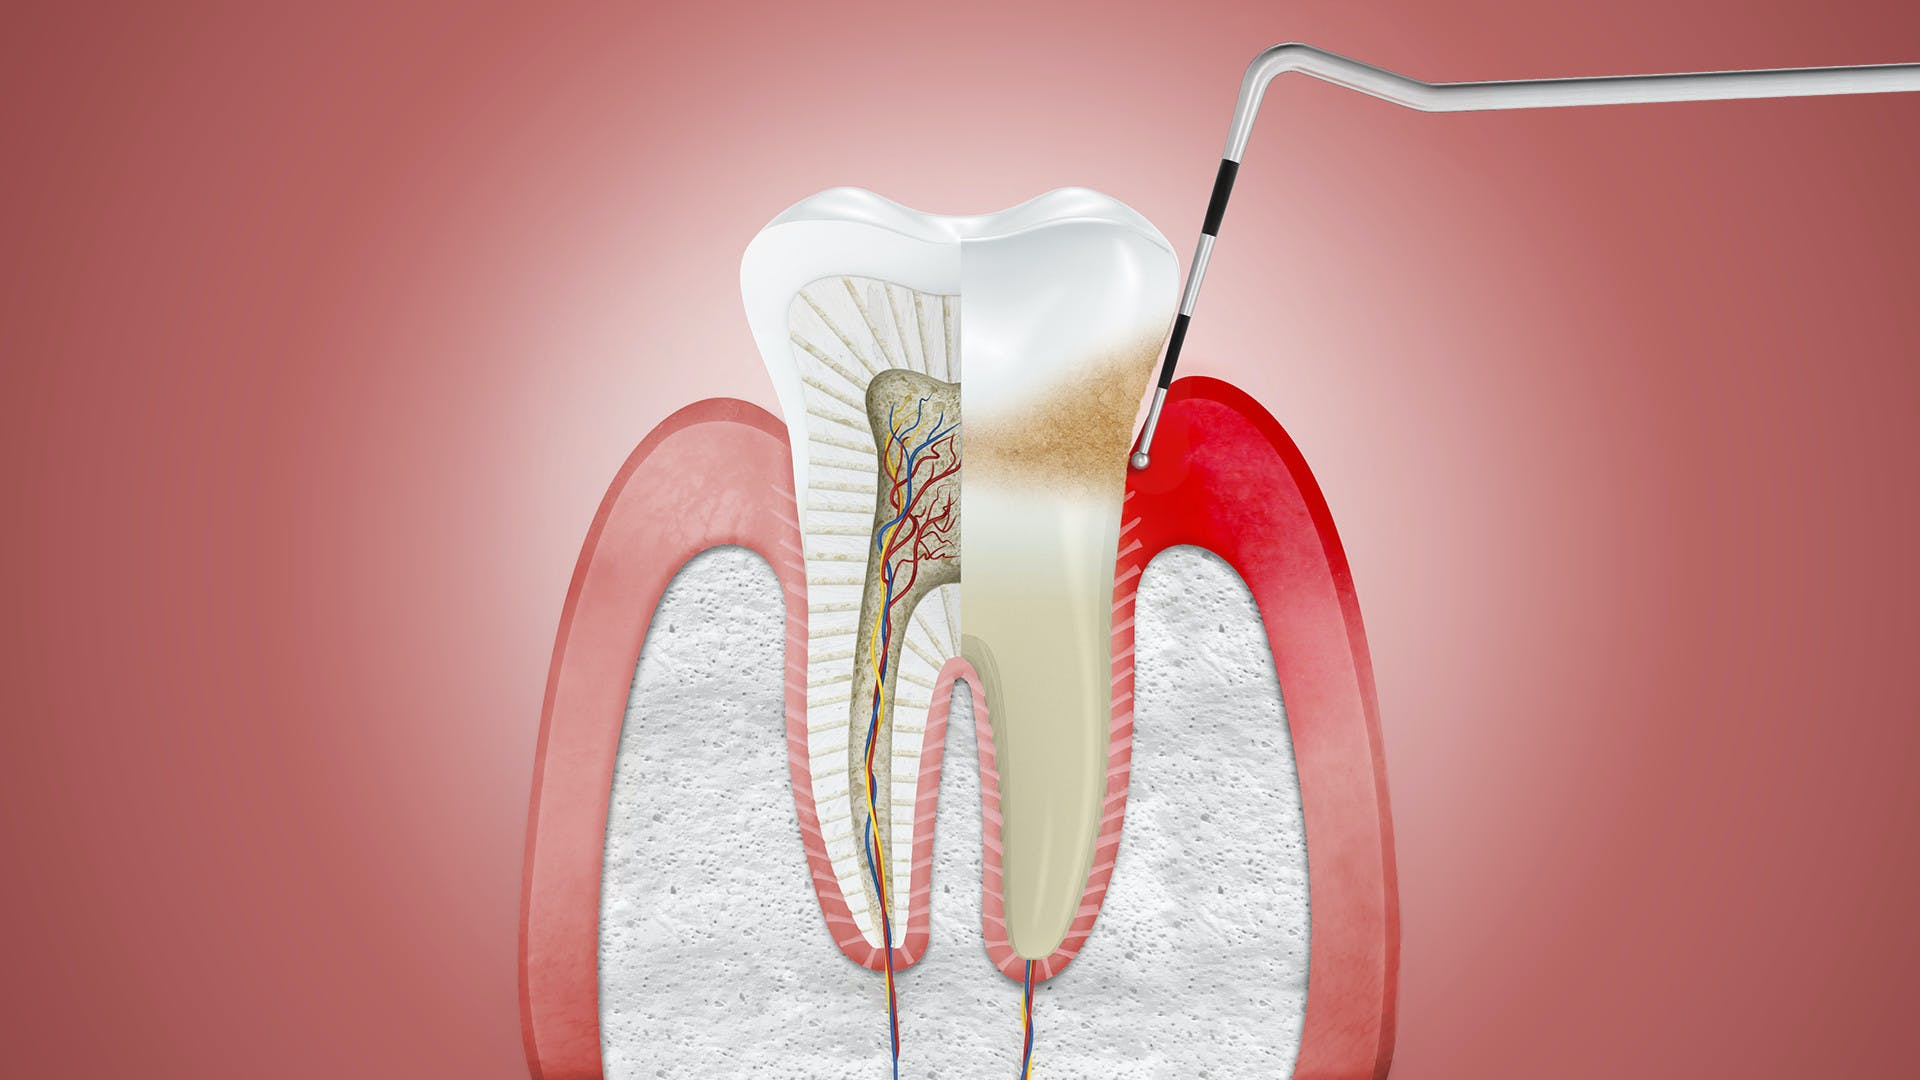 Illustration of gums affected by gingivitis, with dentist tool